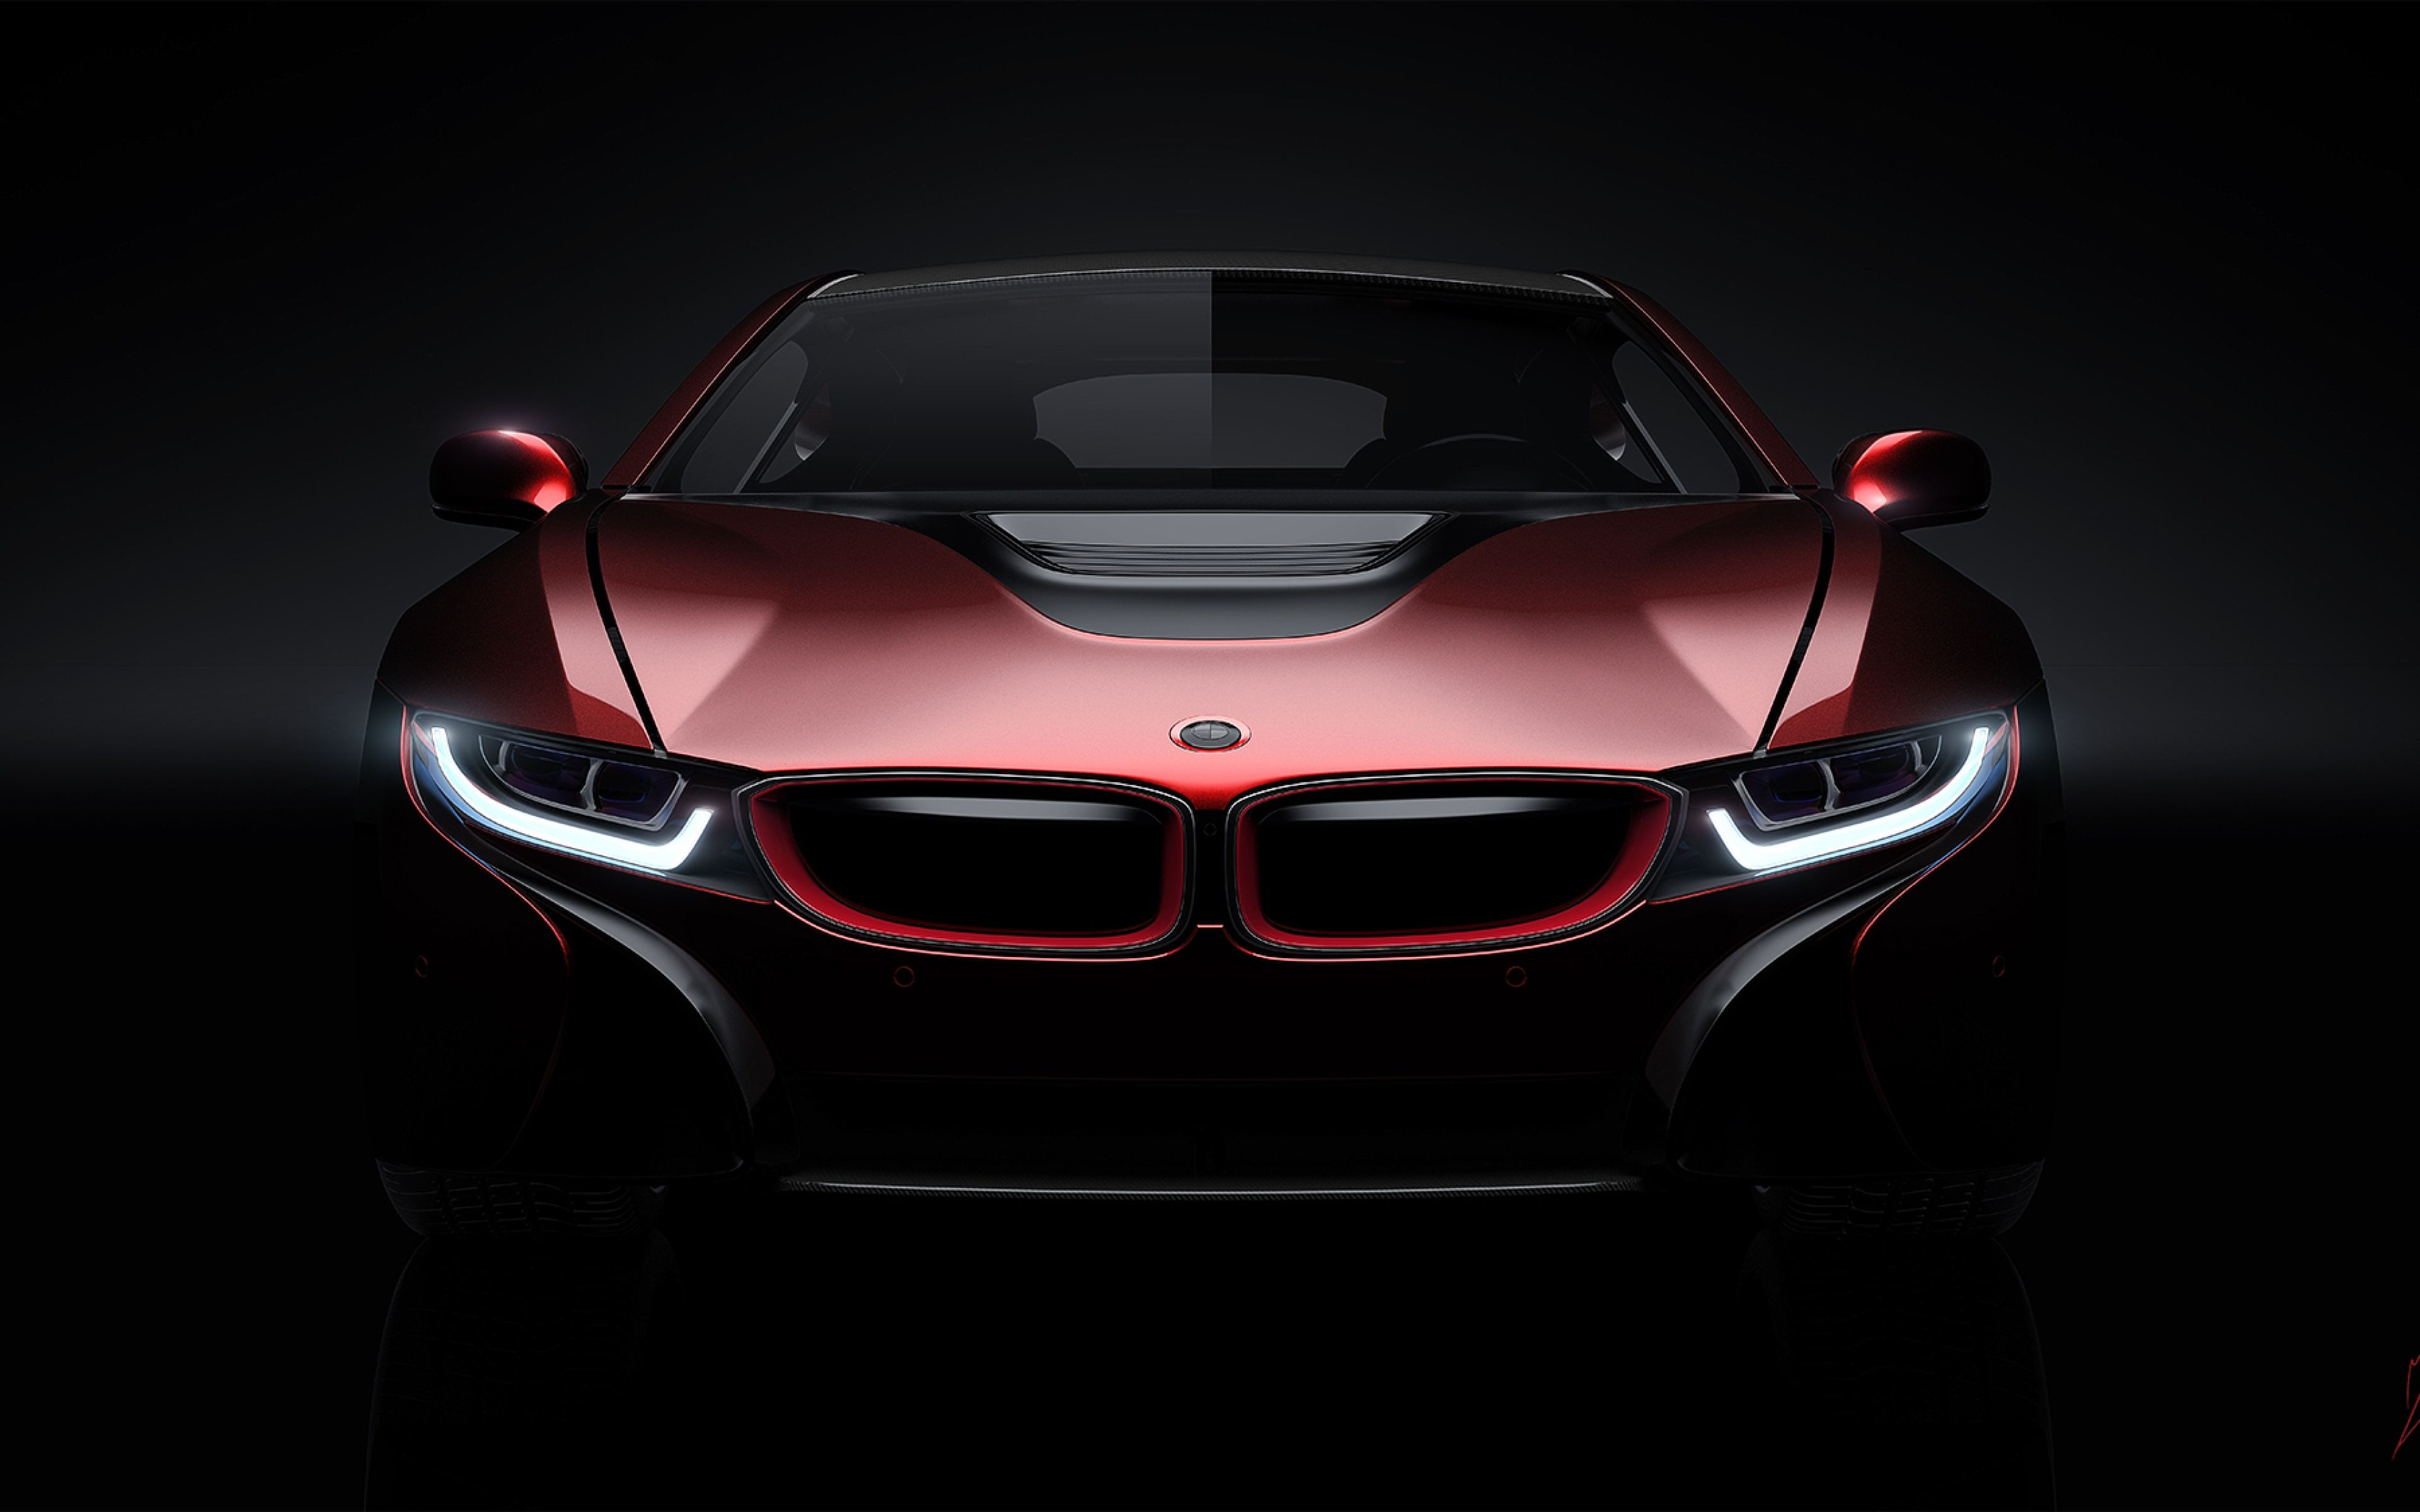 medium resolution of bmw black i8 front download wallpaper 3840x2400 bmw i8 concept front view ultra hd 4k